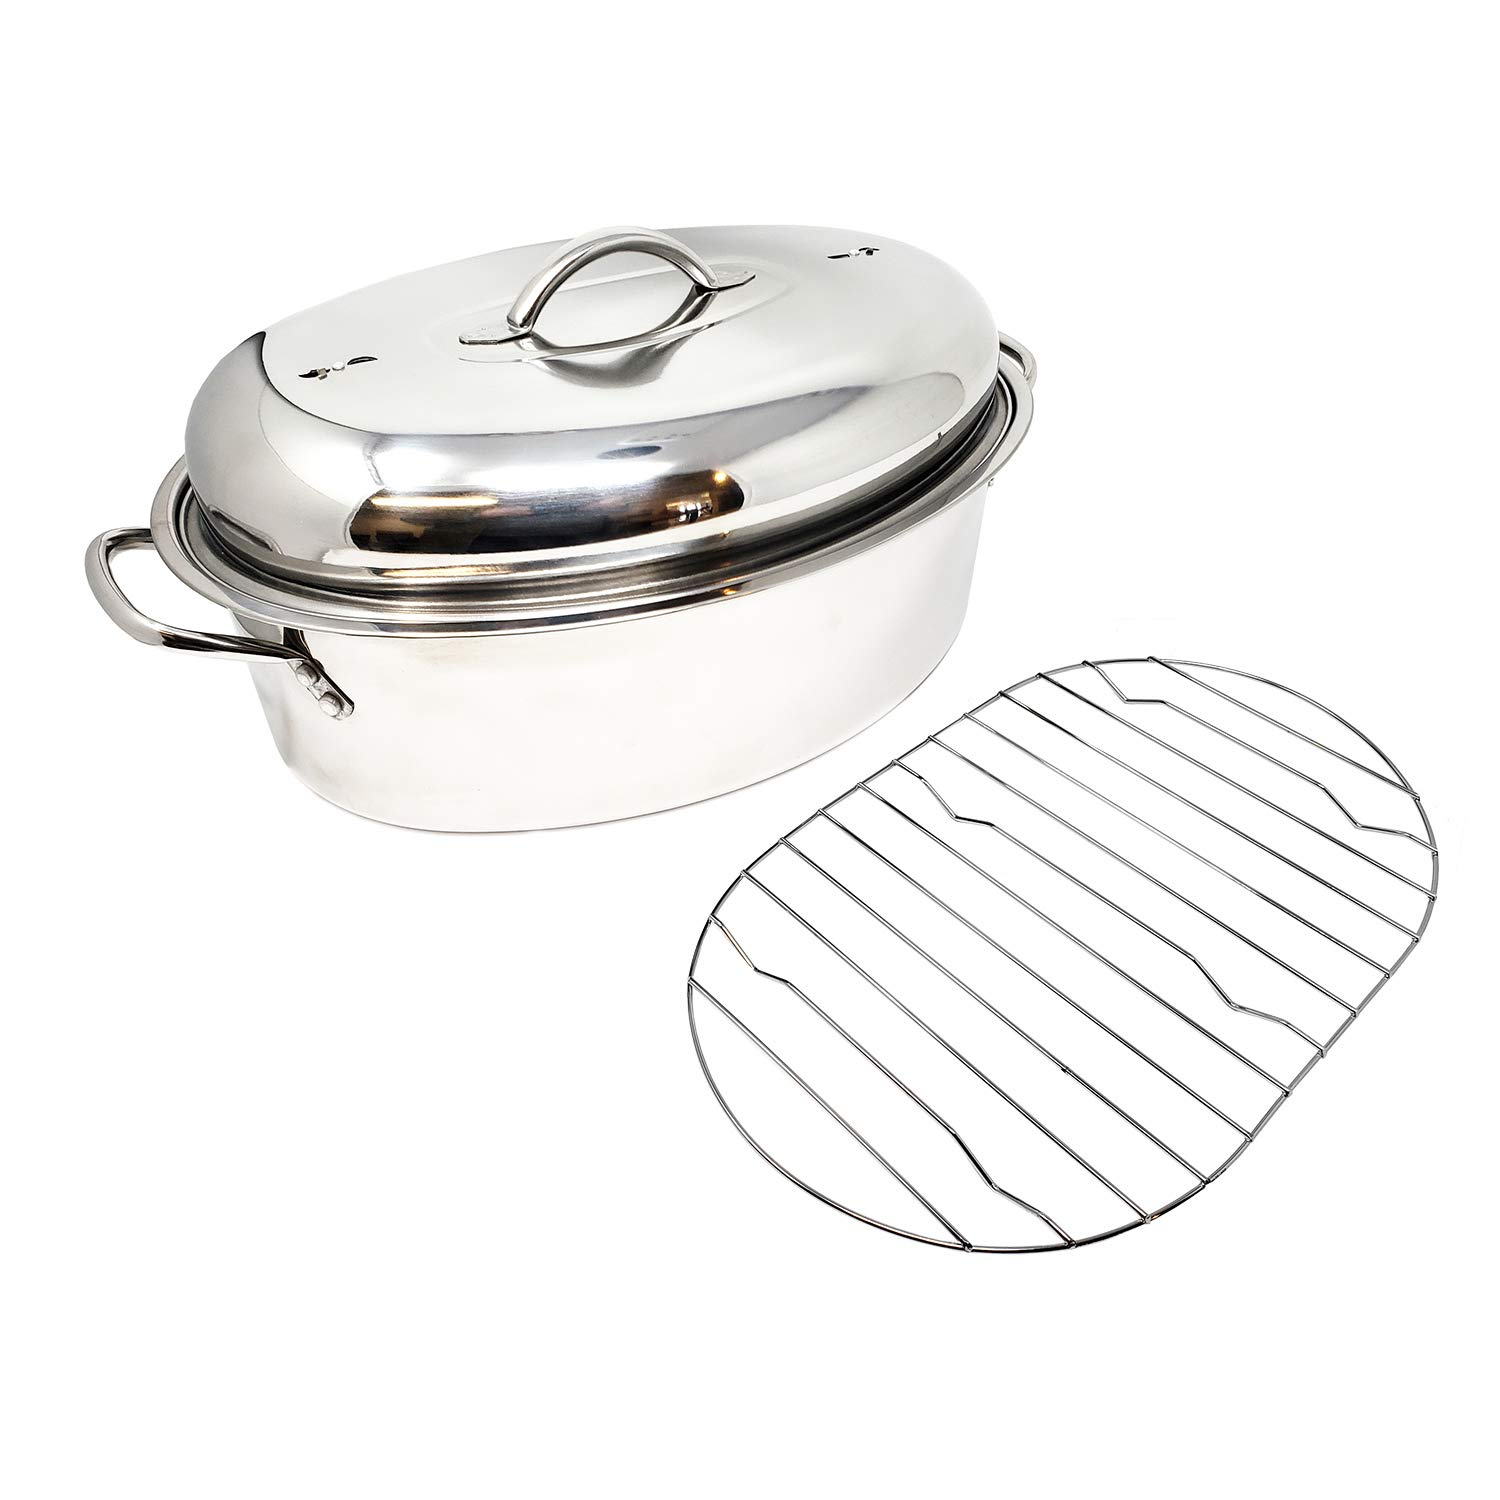 Stainless Steel Oval Lidded Roaster Pan Extra Large & Lightweight | With Induction Lid & Wire Rack | Multi-Purpose Oven Cookware High Dome | Meat Joints Chicken Vegetables 9.5 Quart Capacity by LavoHome